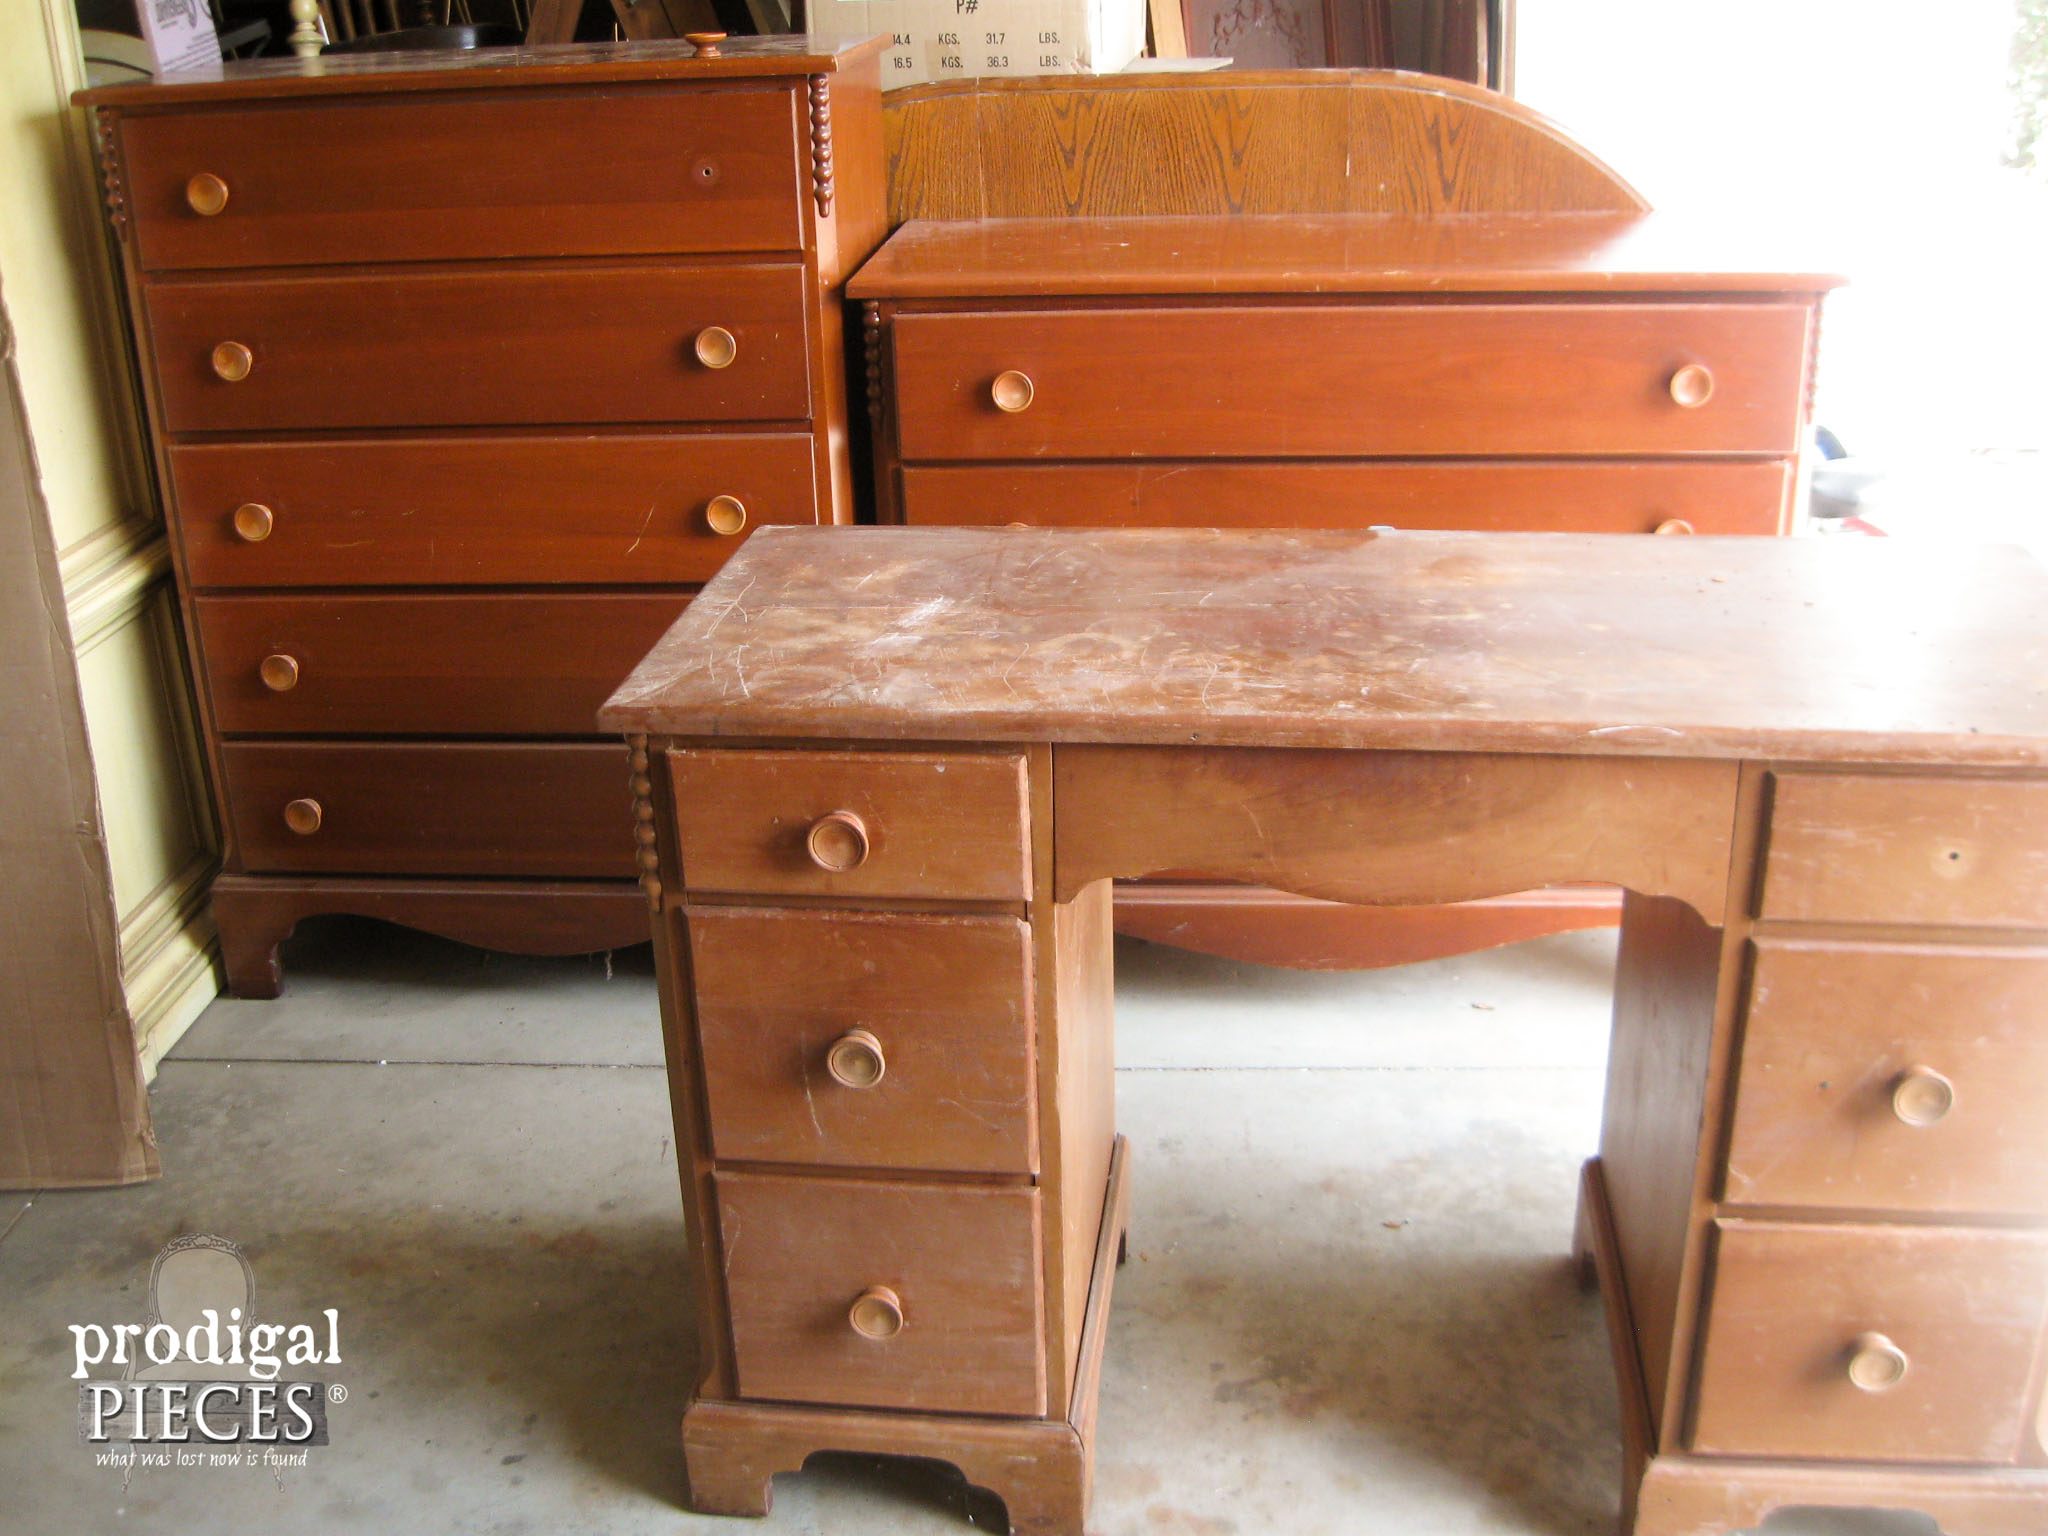 vintage bedroom sets. Vintage Cherry Bedroom Set Reunited  Prodigal Pieces www prodigalpieces com A Reunion